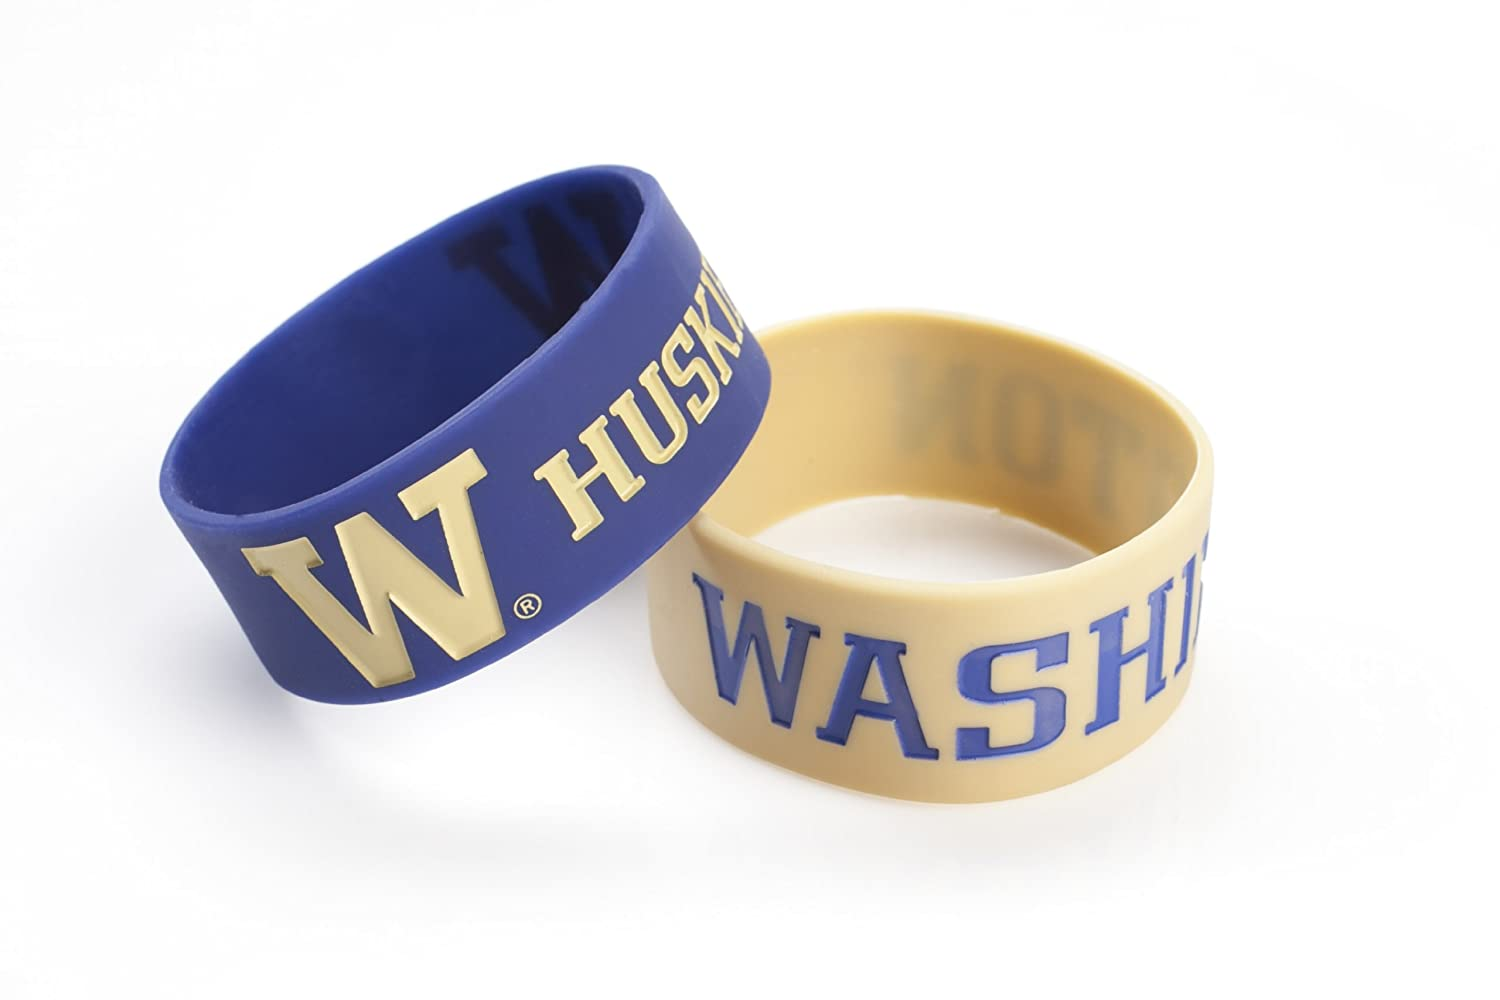 NCAA Washington Huskies Silicone Rubber Bracelet 2 Pack